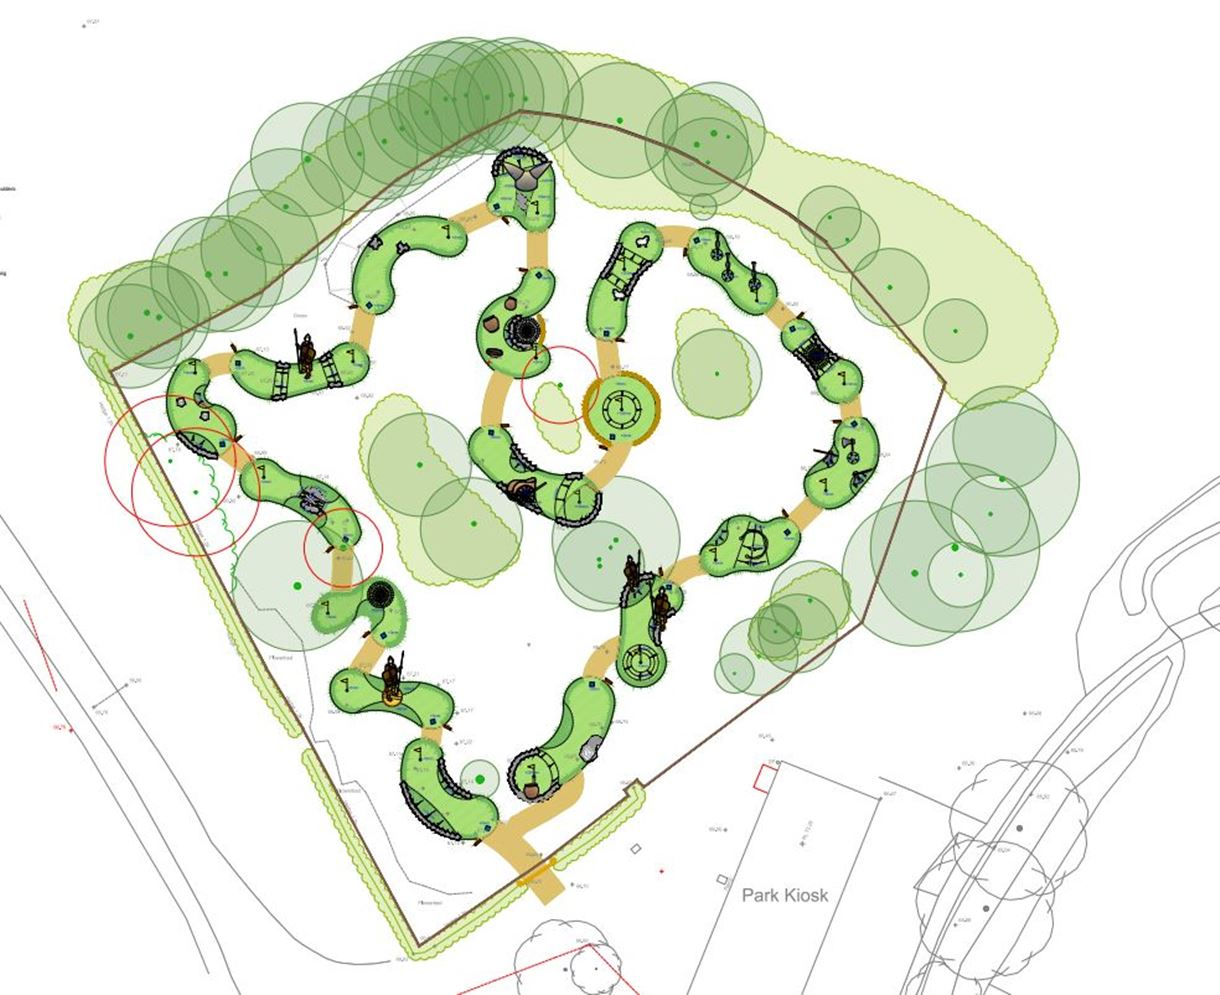 plans for Adevnture golf at charlton lakeside